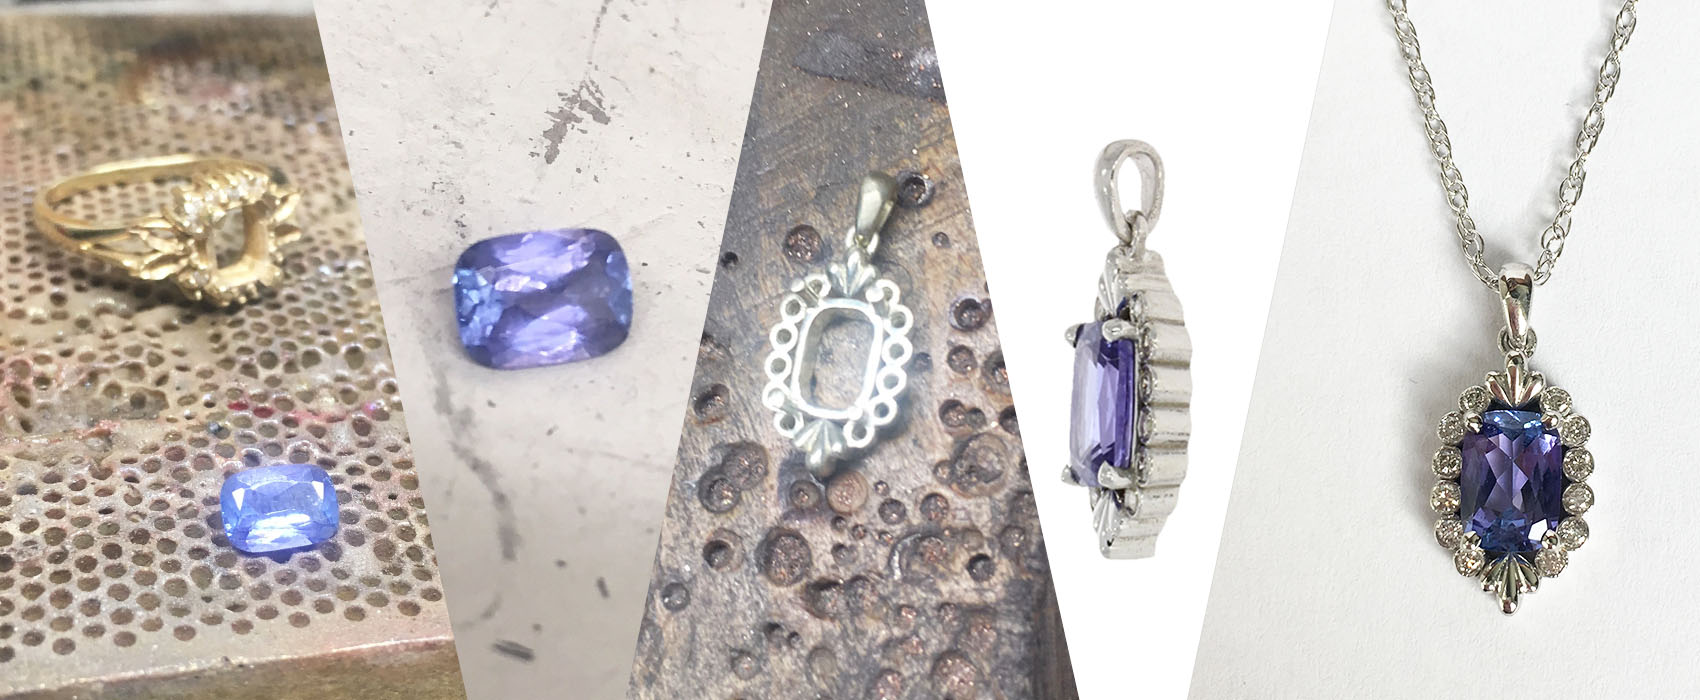 Goldsmith's process making old jewellery into a new opulent pendant